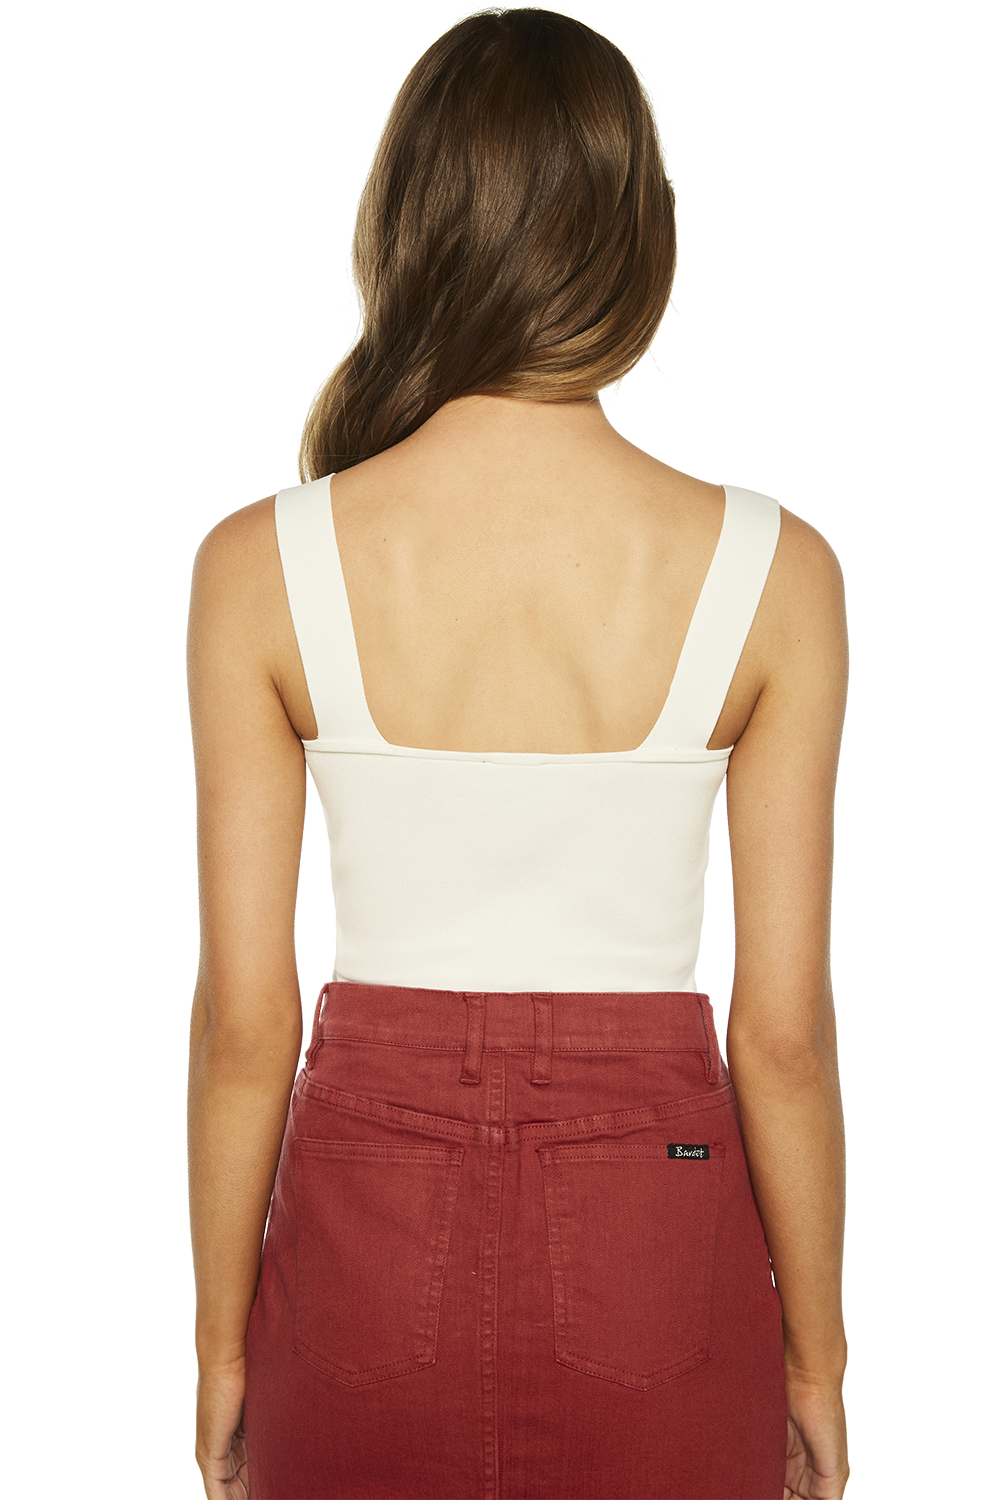 TEALE KNIT TANK TOP in colour SNOW WHITE